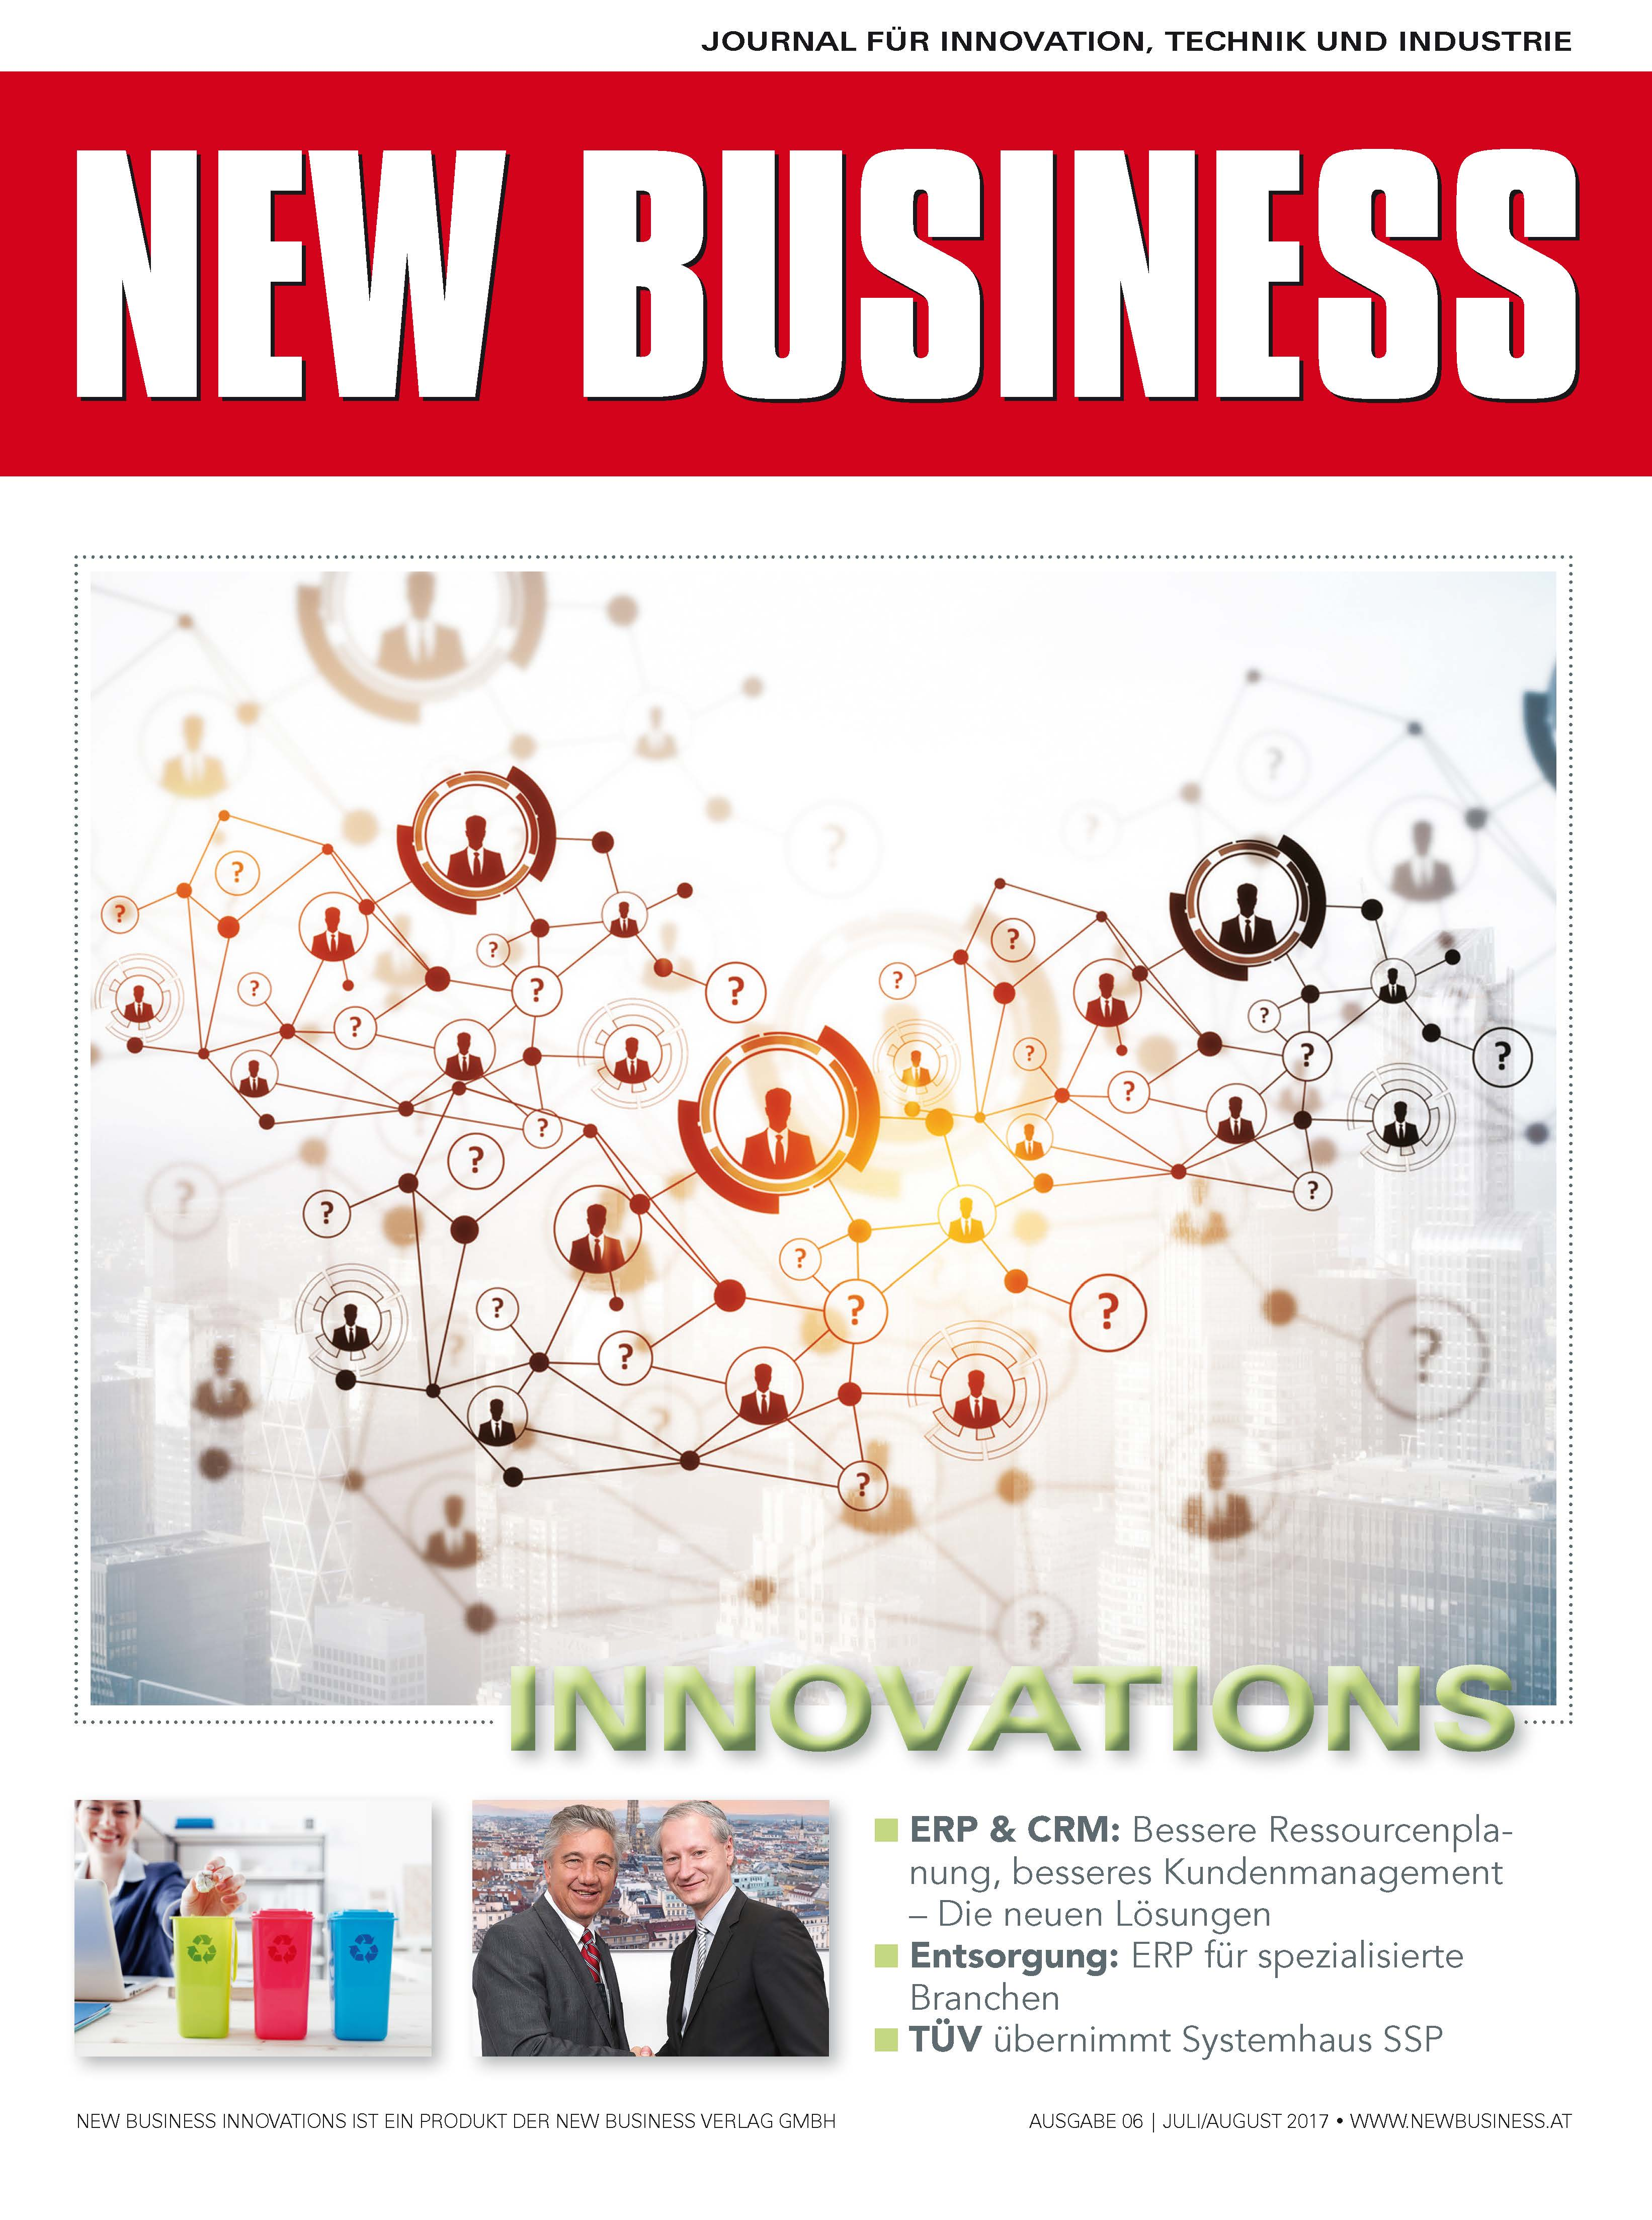 Cover: NEW BUSINESS Innovations - NR. 06, JULI/AUGUST 2017